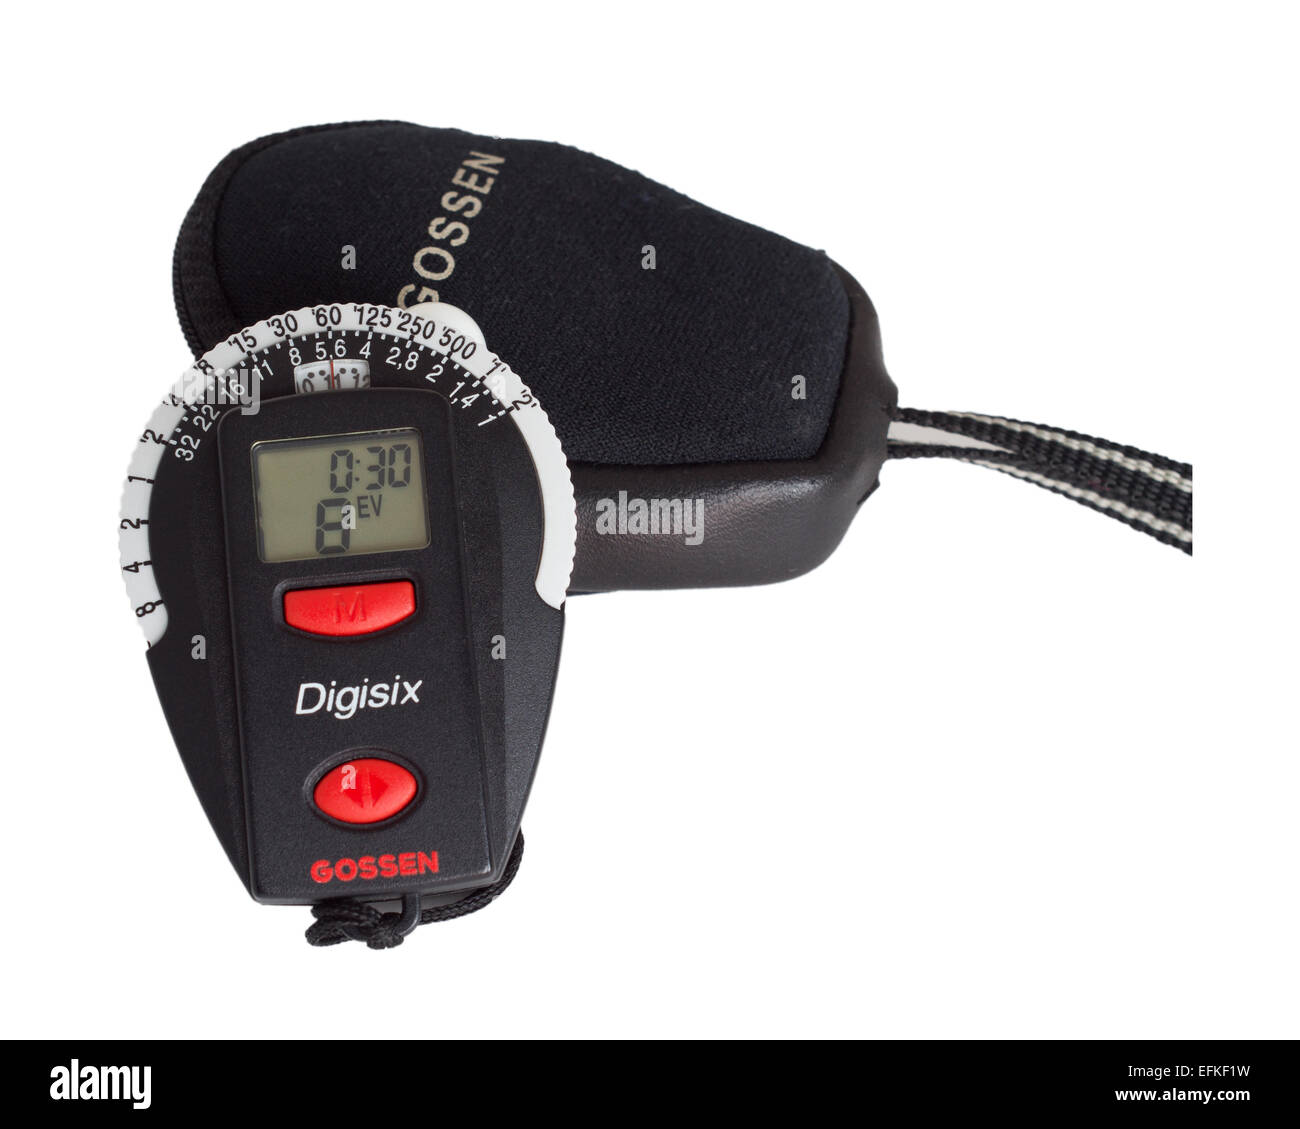 Gossen Digisix photographic light or exposure meter with pouch isolated on a white background. - Stock Image